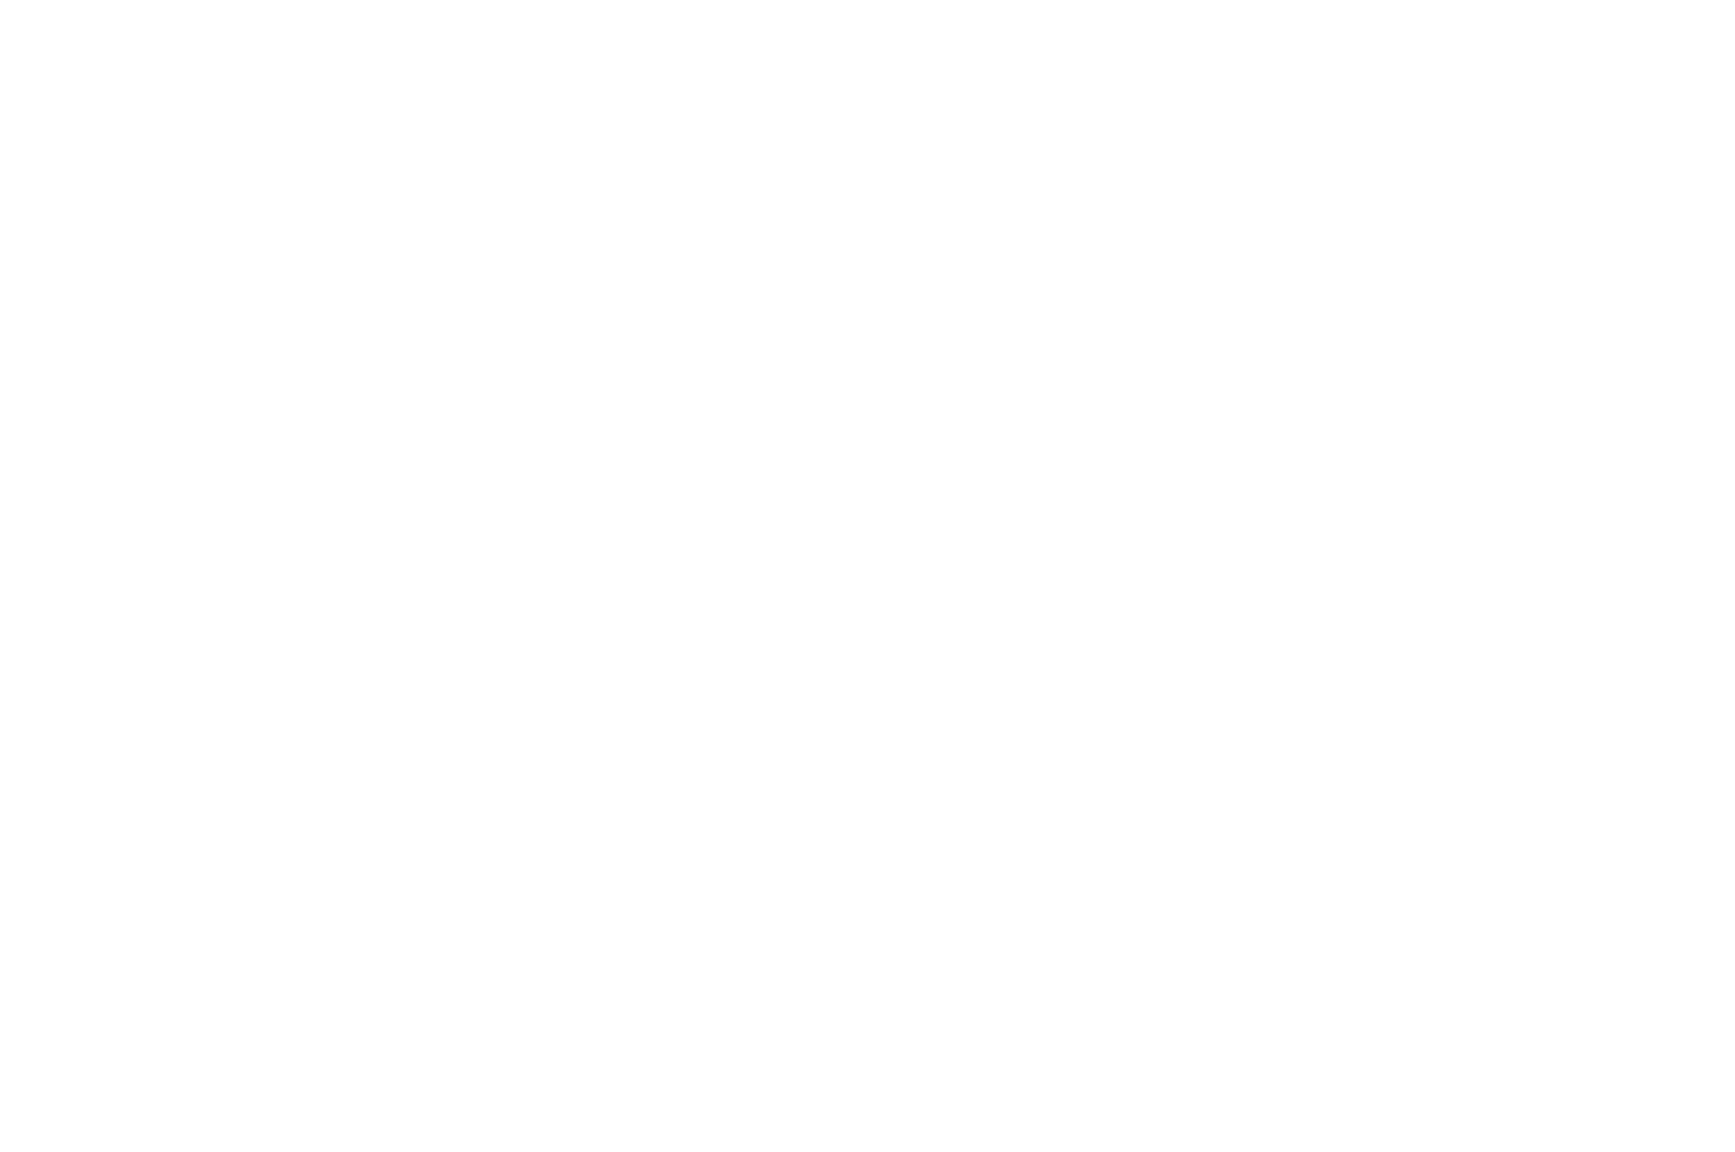 FINALIST - I See You Awards - 2020